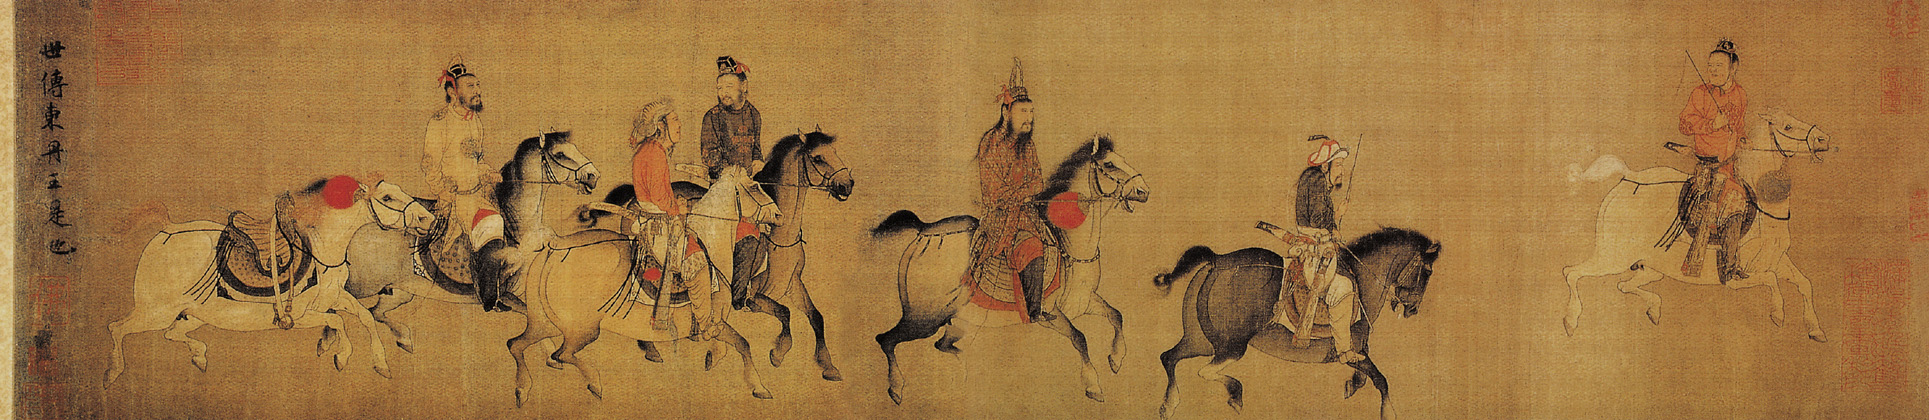 MONGOLS CHINA AND THE SILK ROAD A Court On Horses